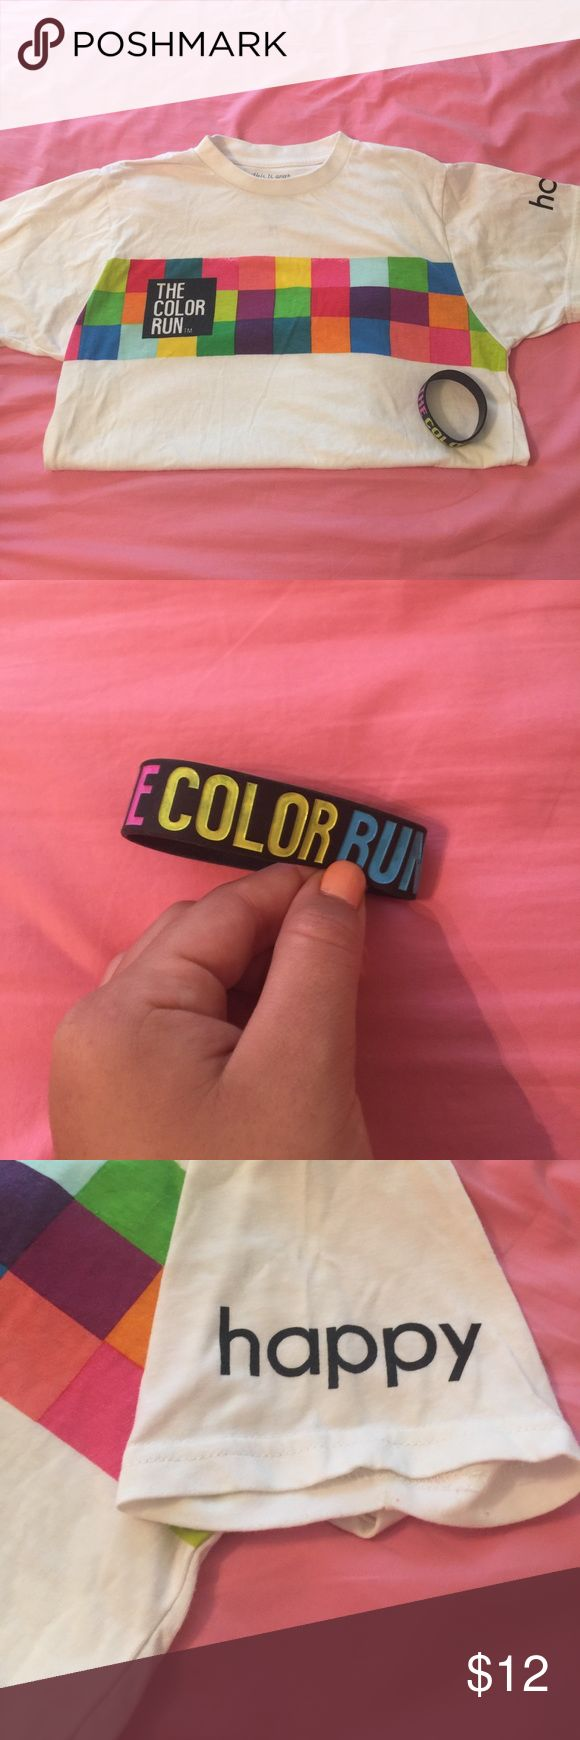 The Color Run Tee and Bracelet The color run 2014 Shirt and bracelet Tops Tees - Short Sleeve